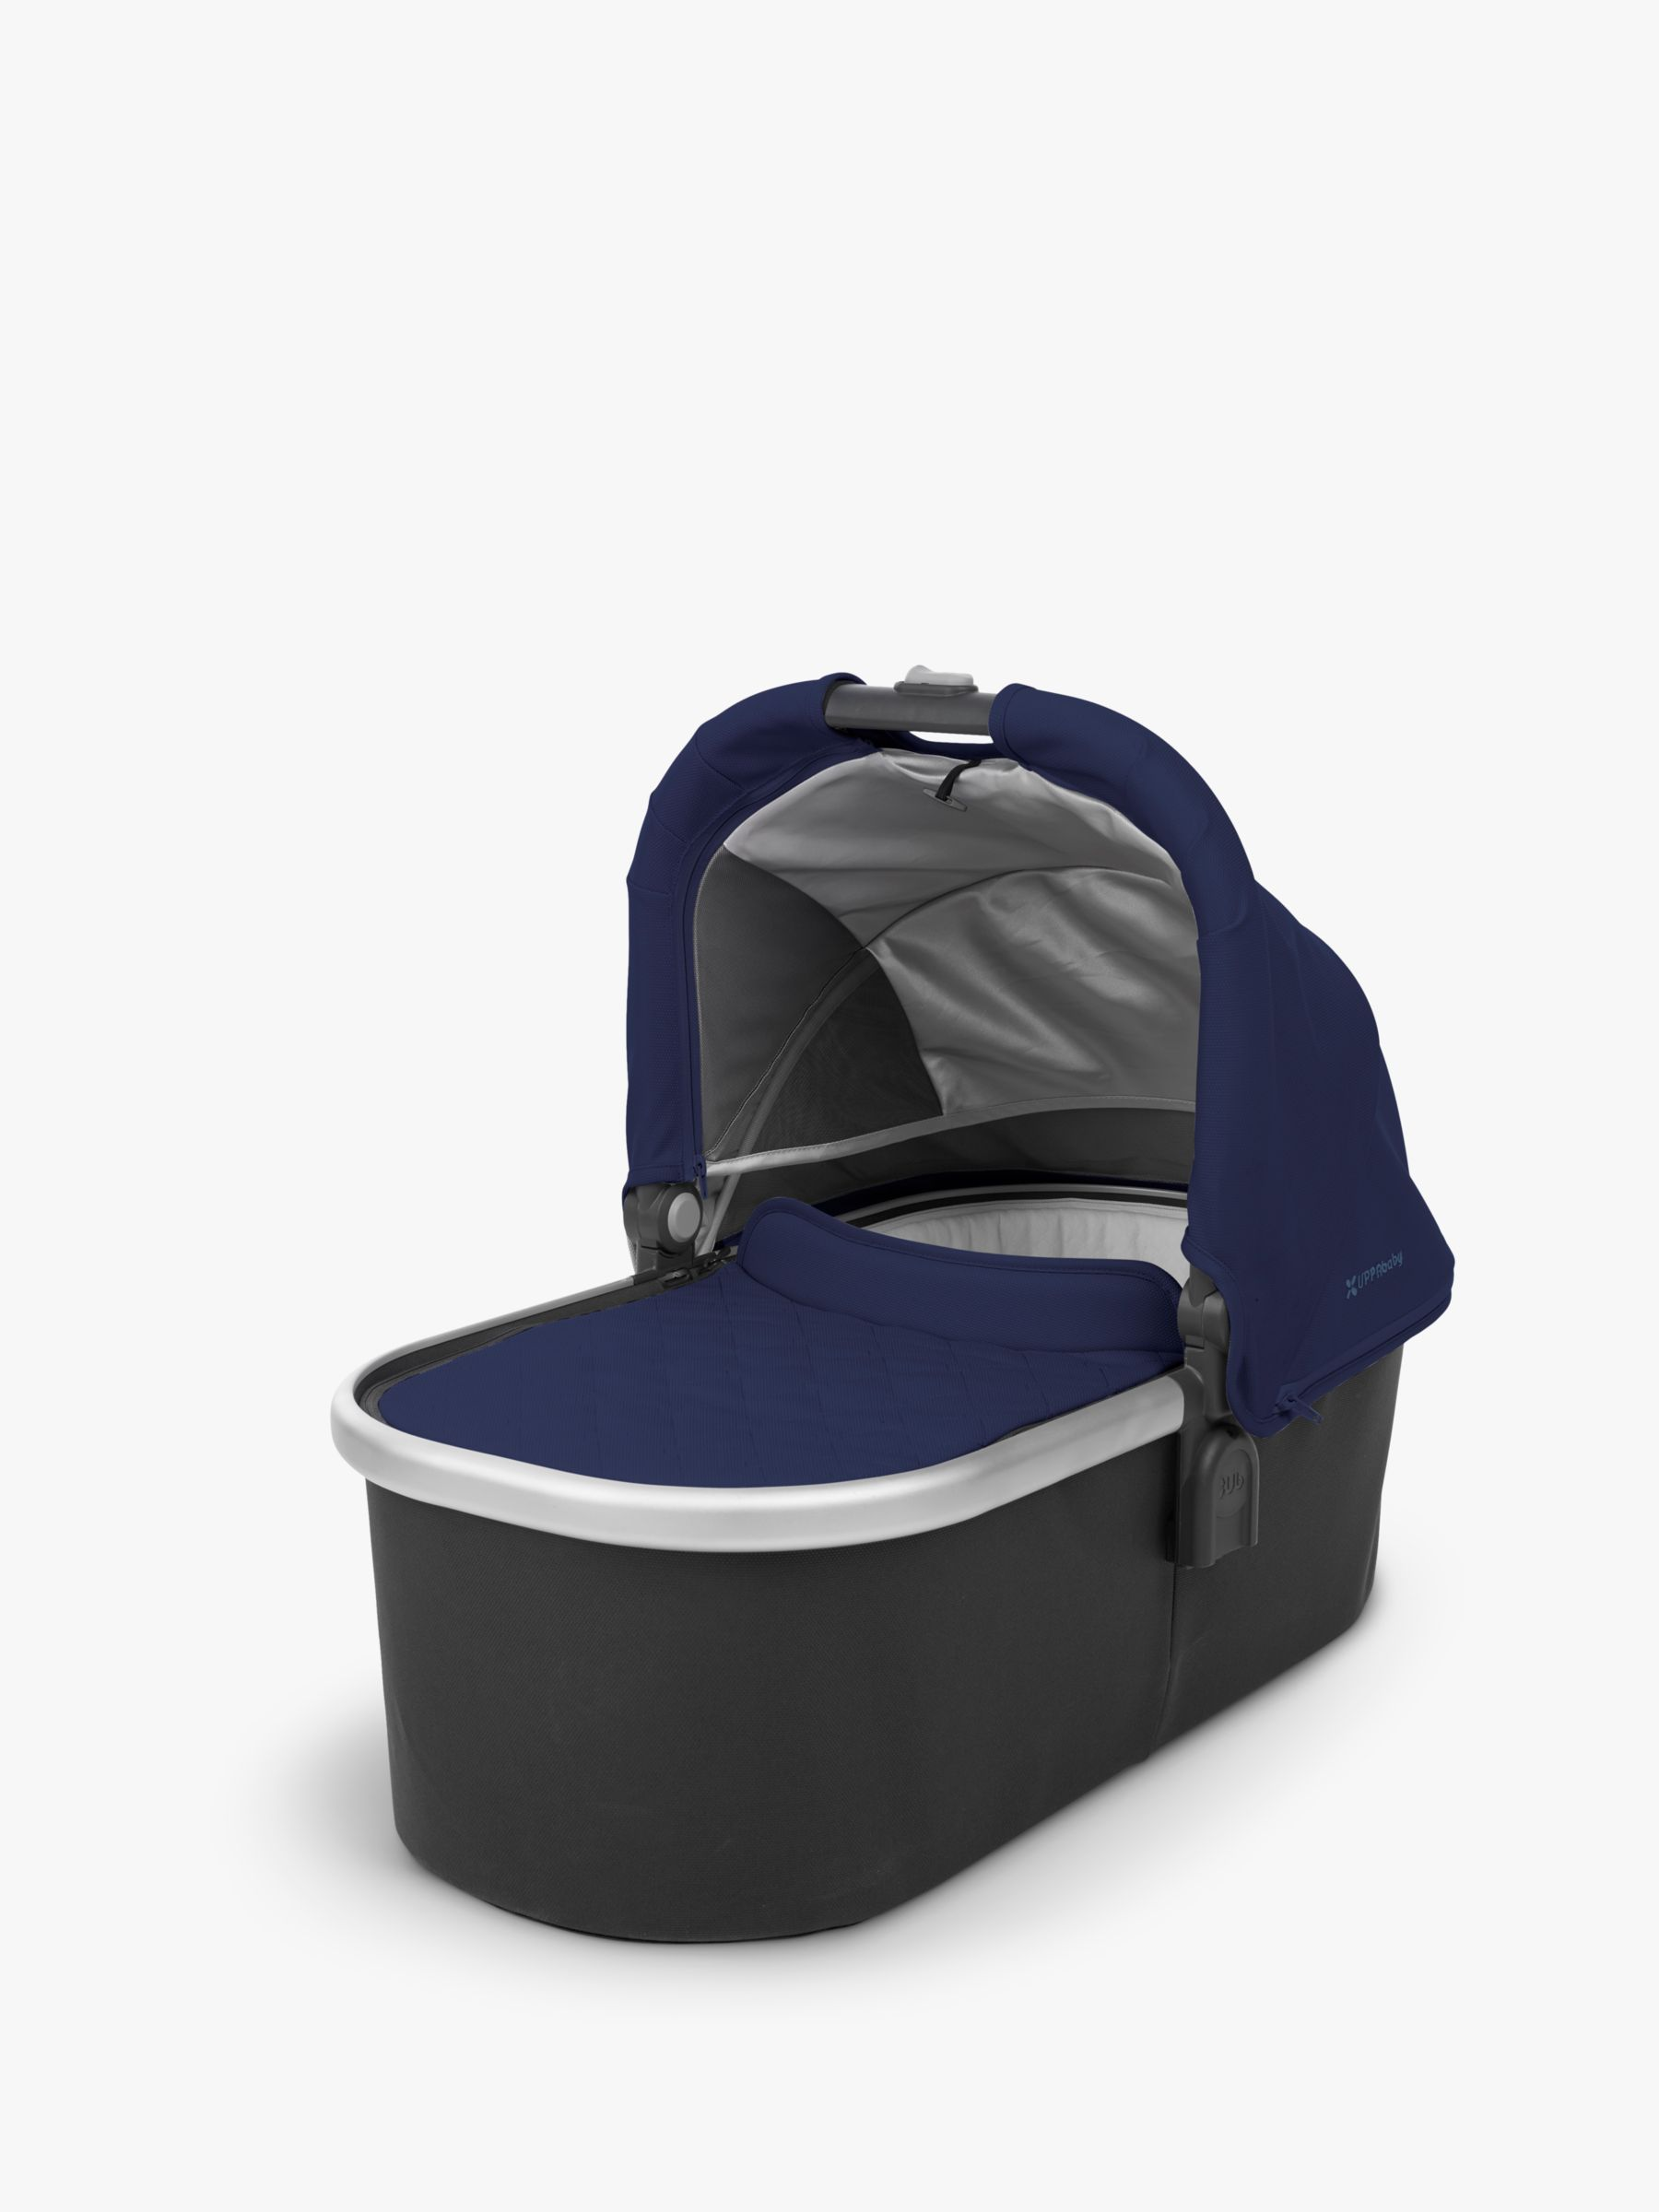 Uppababy UPPAbaby Taylor Carrycot, Blue Navy